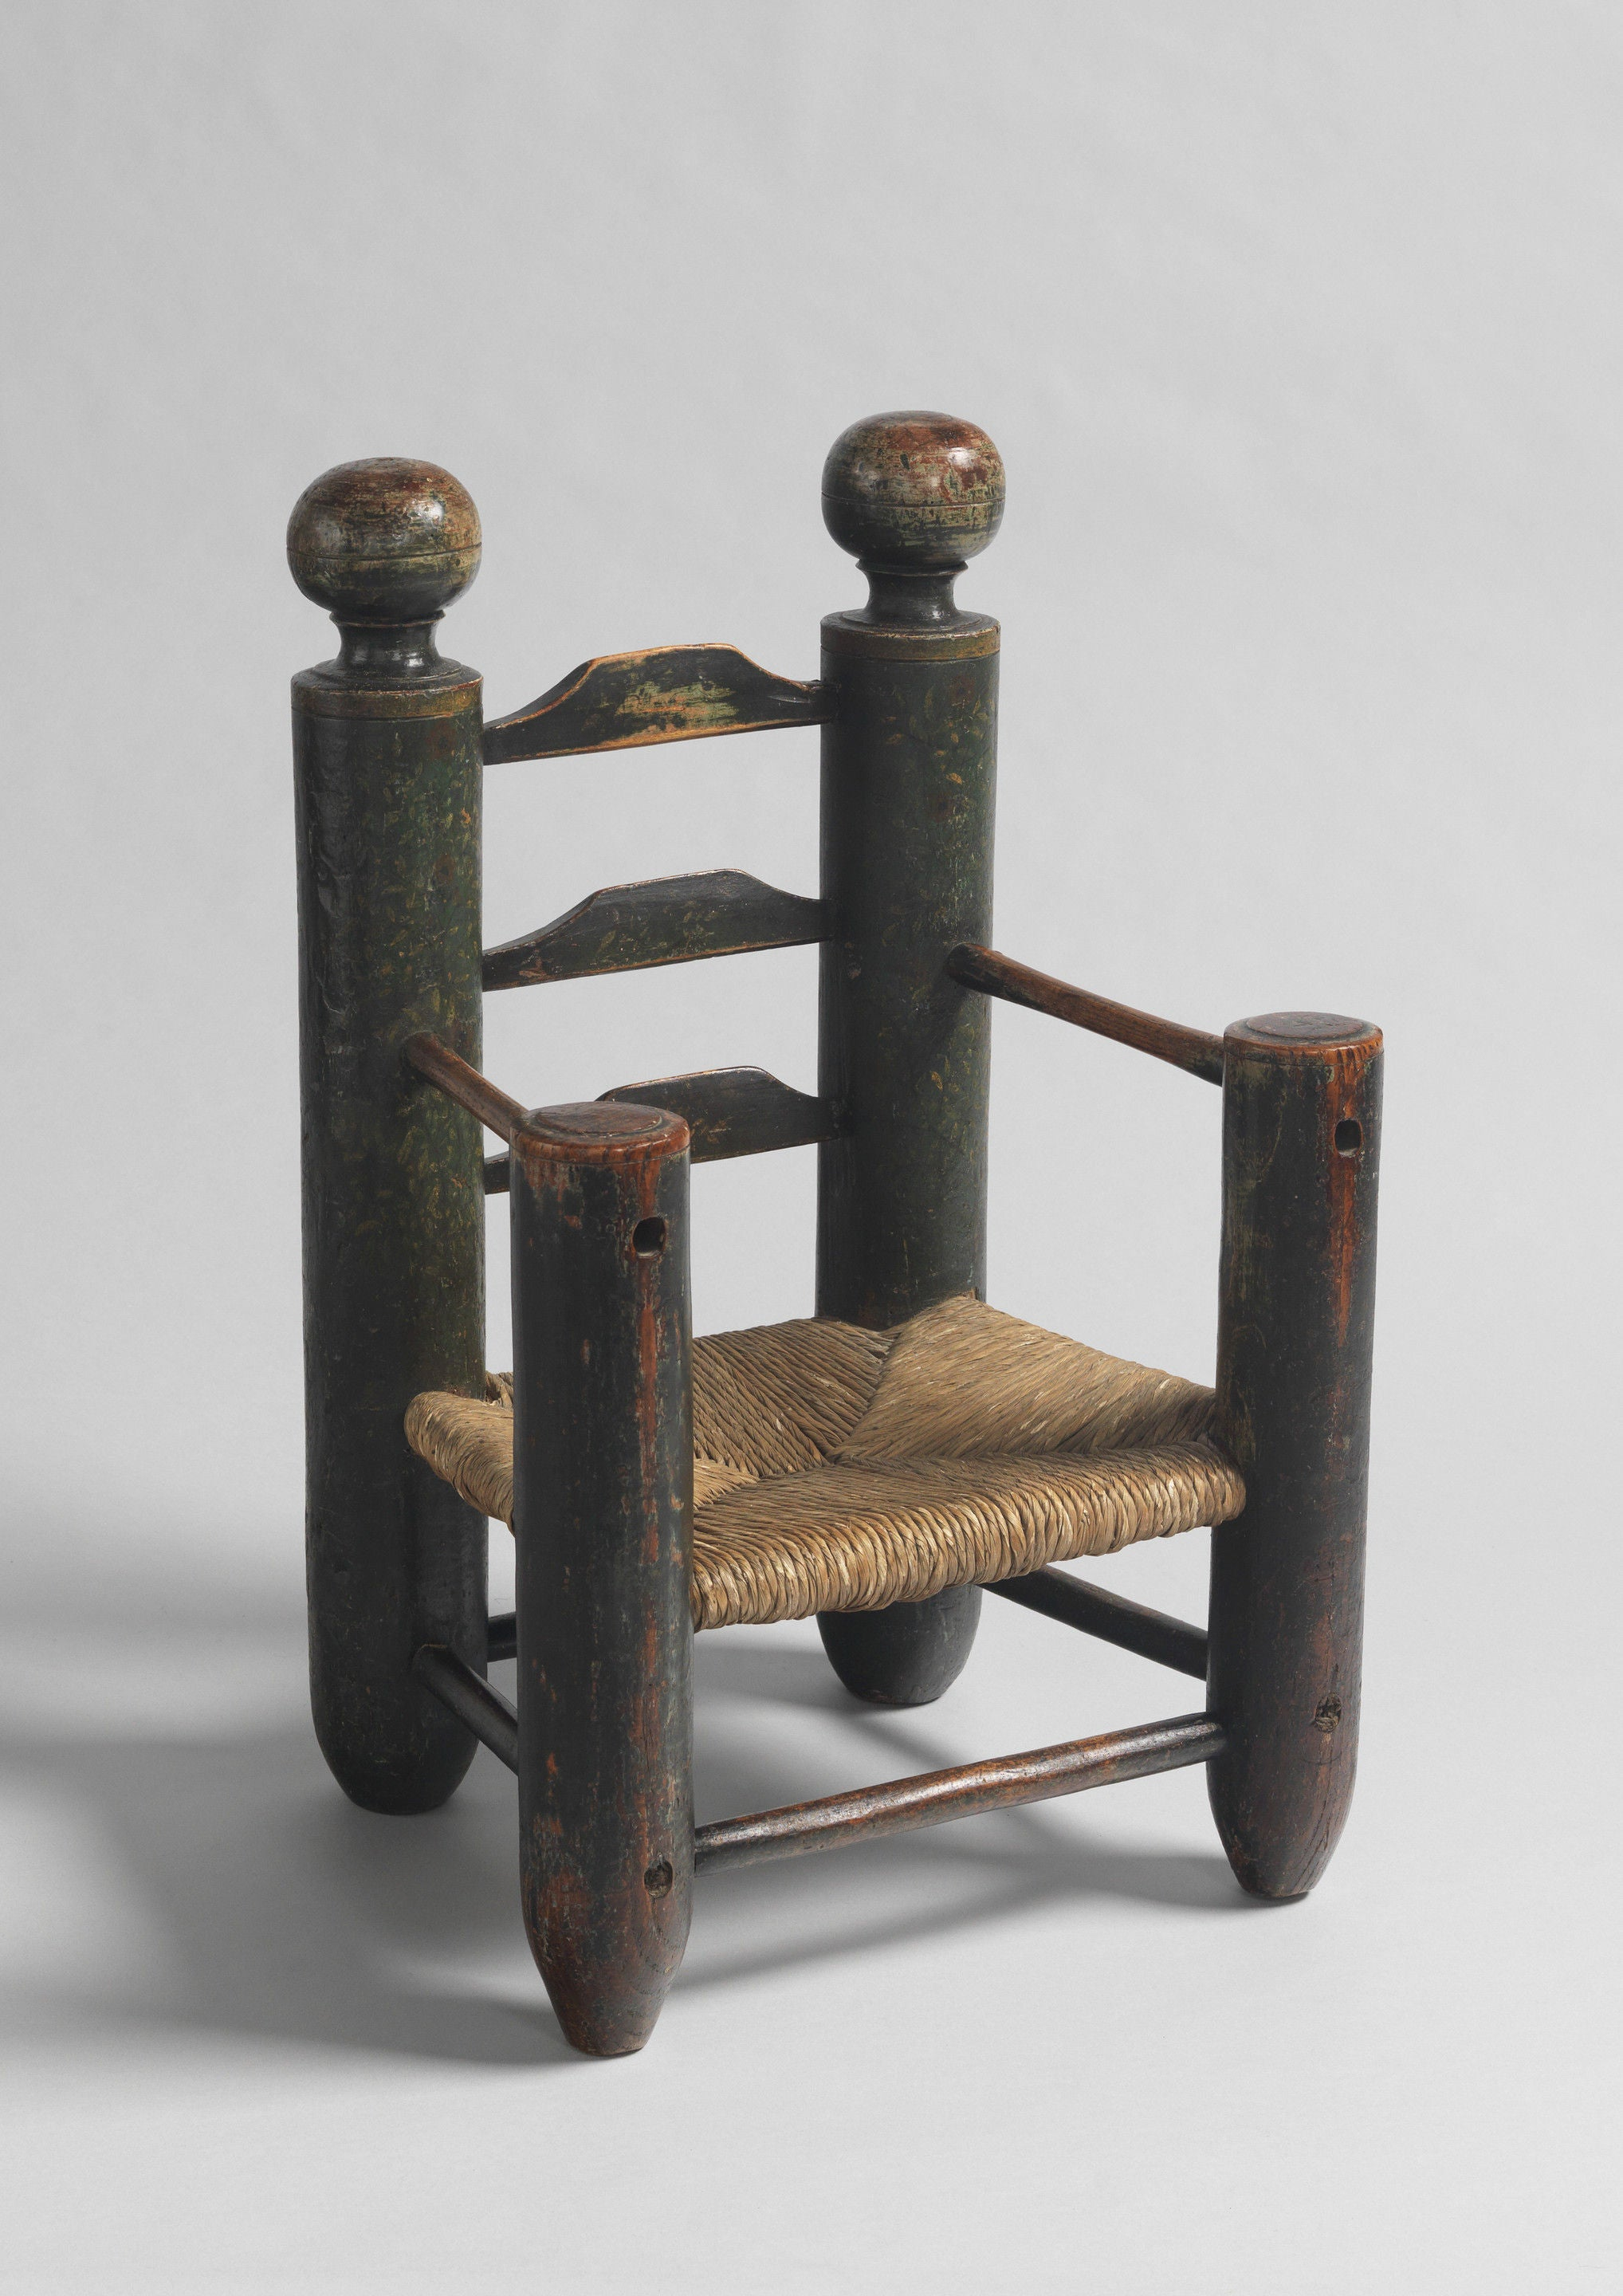 Monumental Early Ladderback Child's Chair